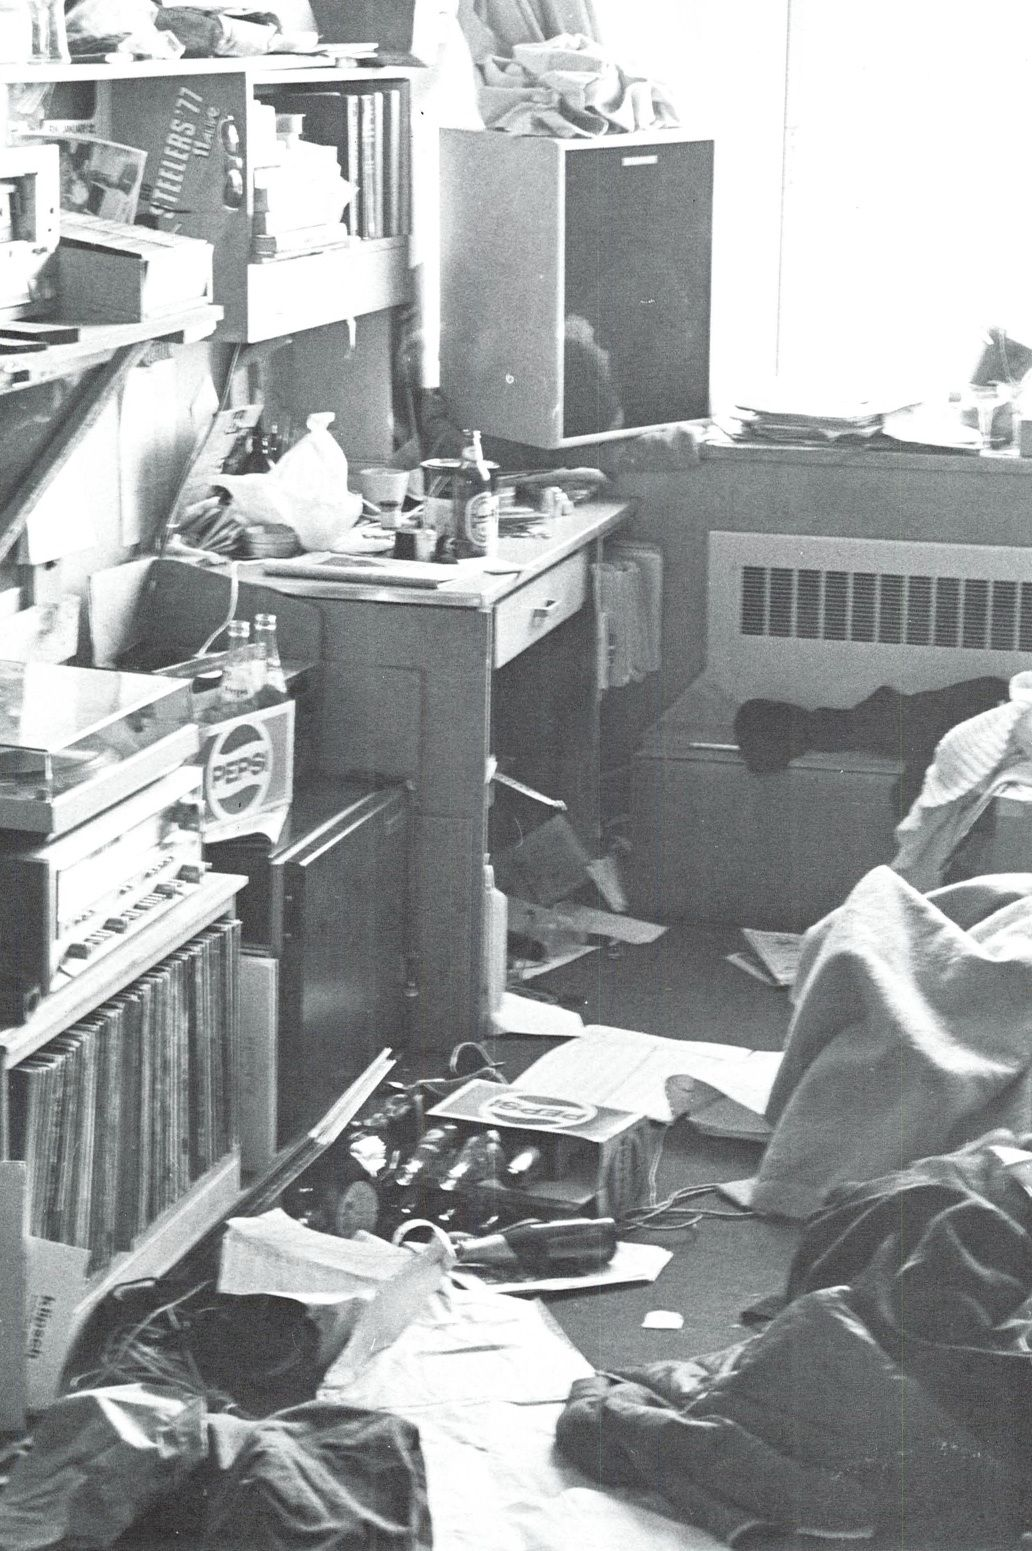 Typical Dorm Room: Typical Dorm Room At The UO 1978. From The 1978 Oregana